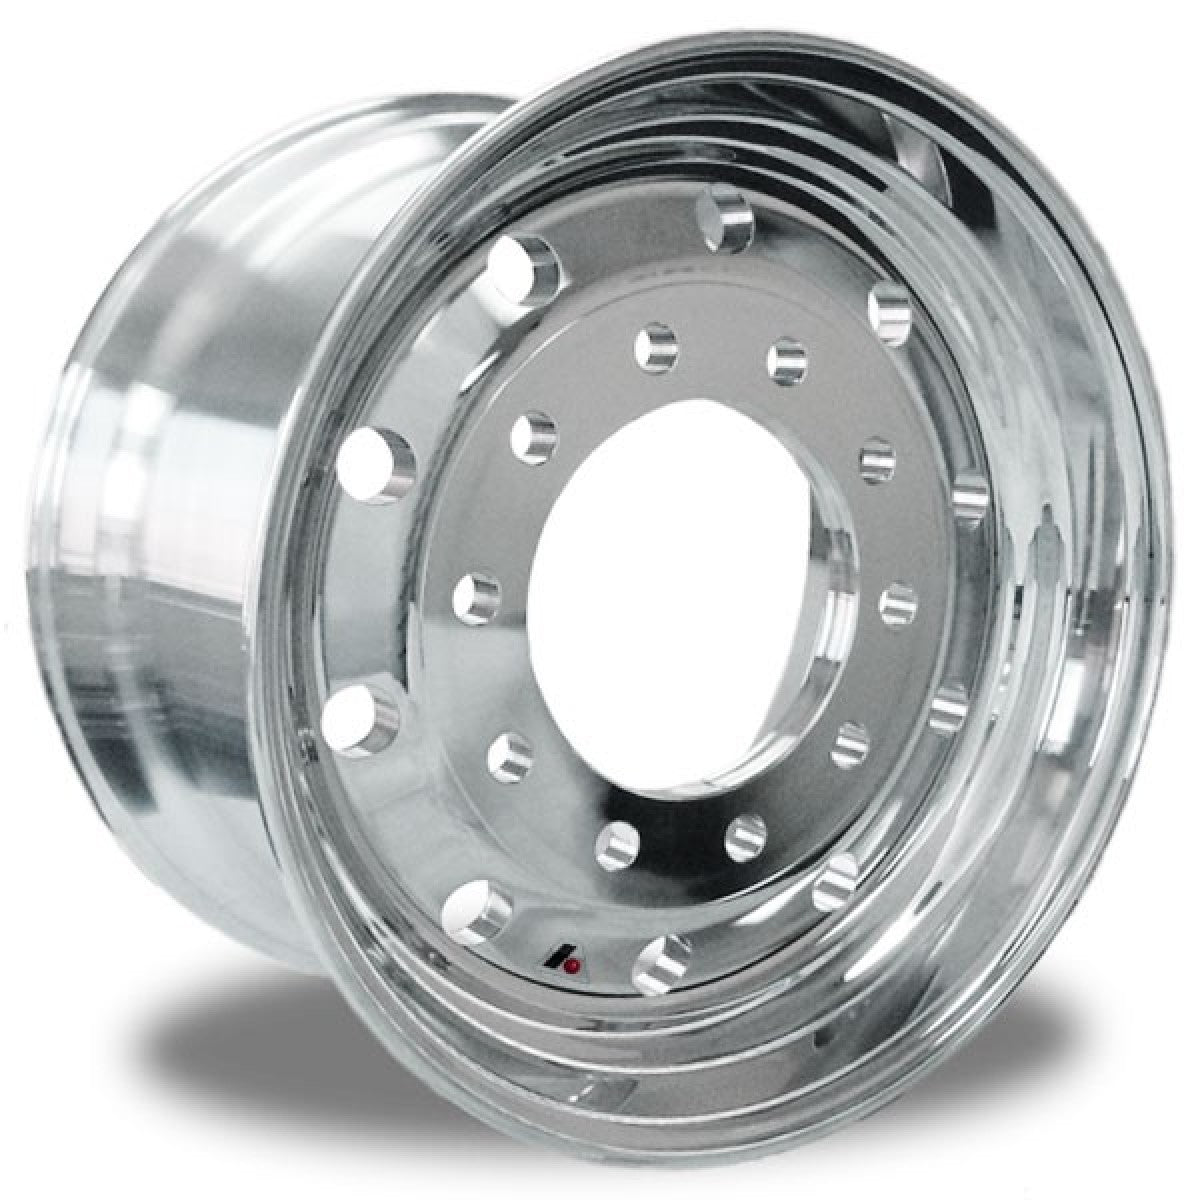 "Accuride 22.5 x 12.25"" Aluminum Float Wheel 2.75"" offset"